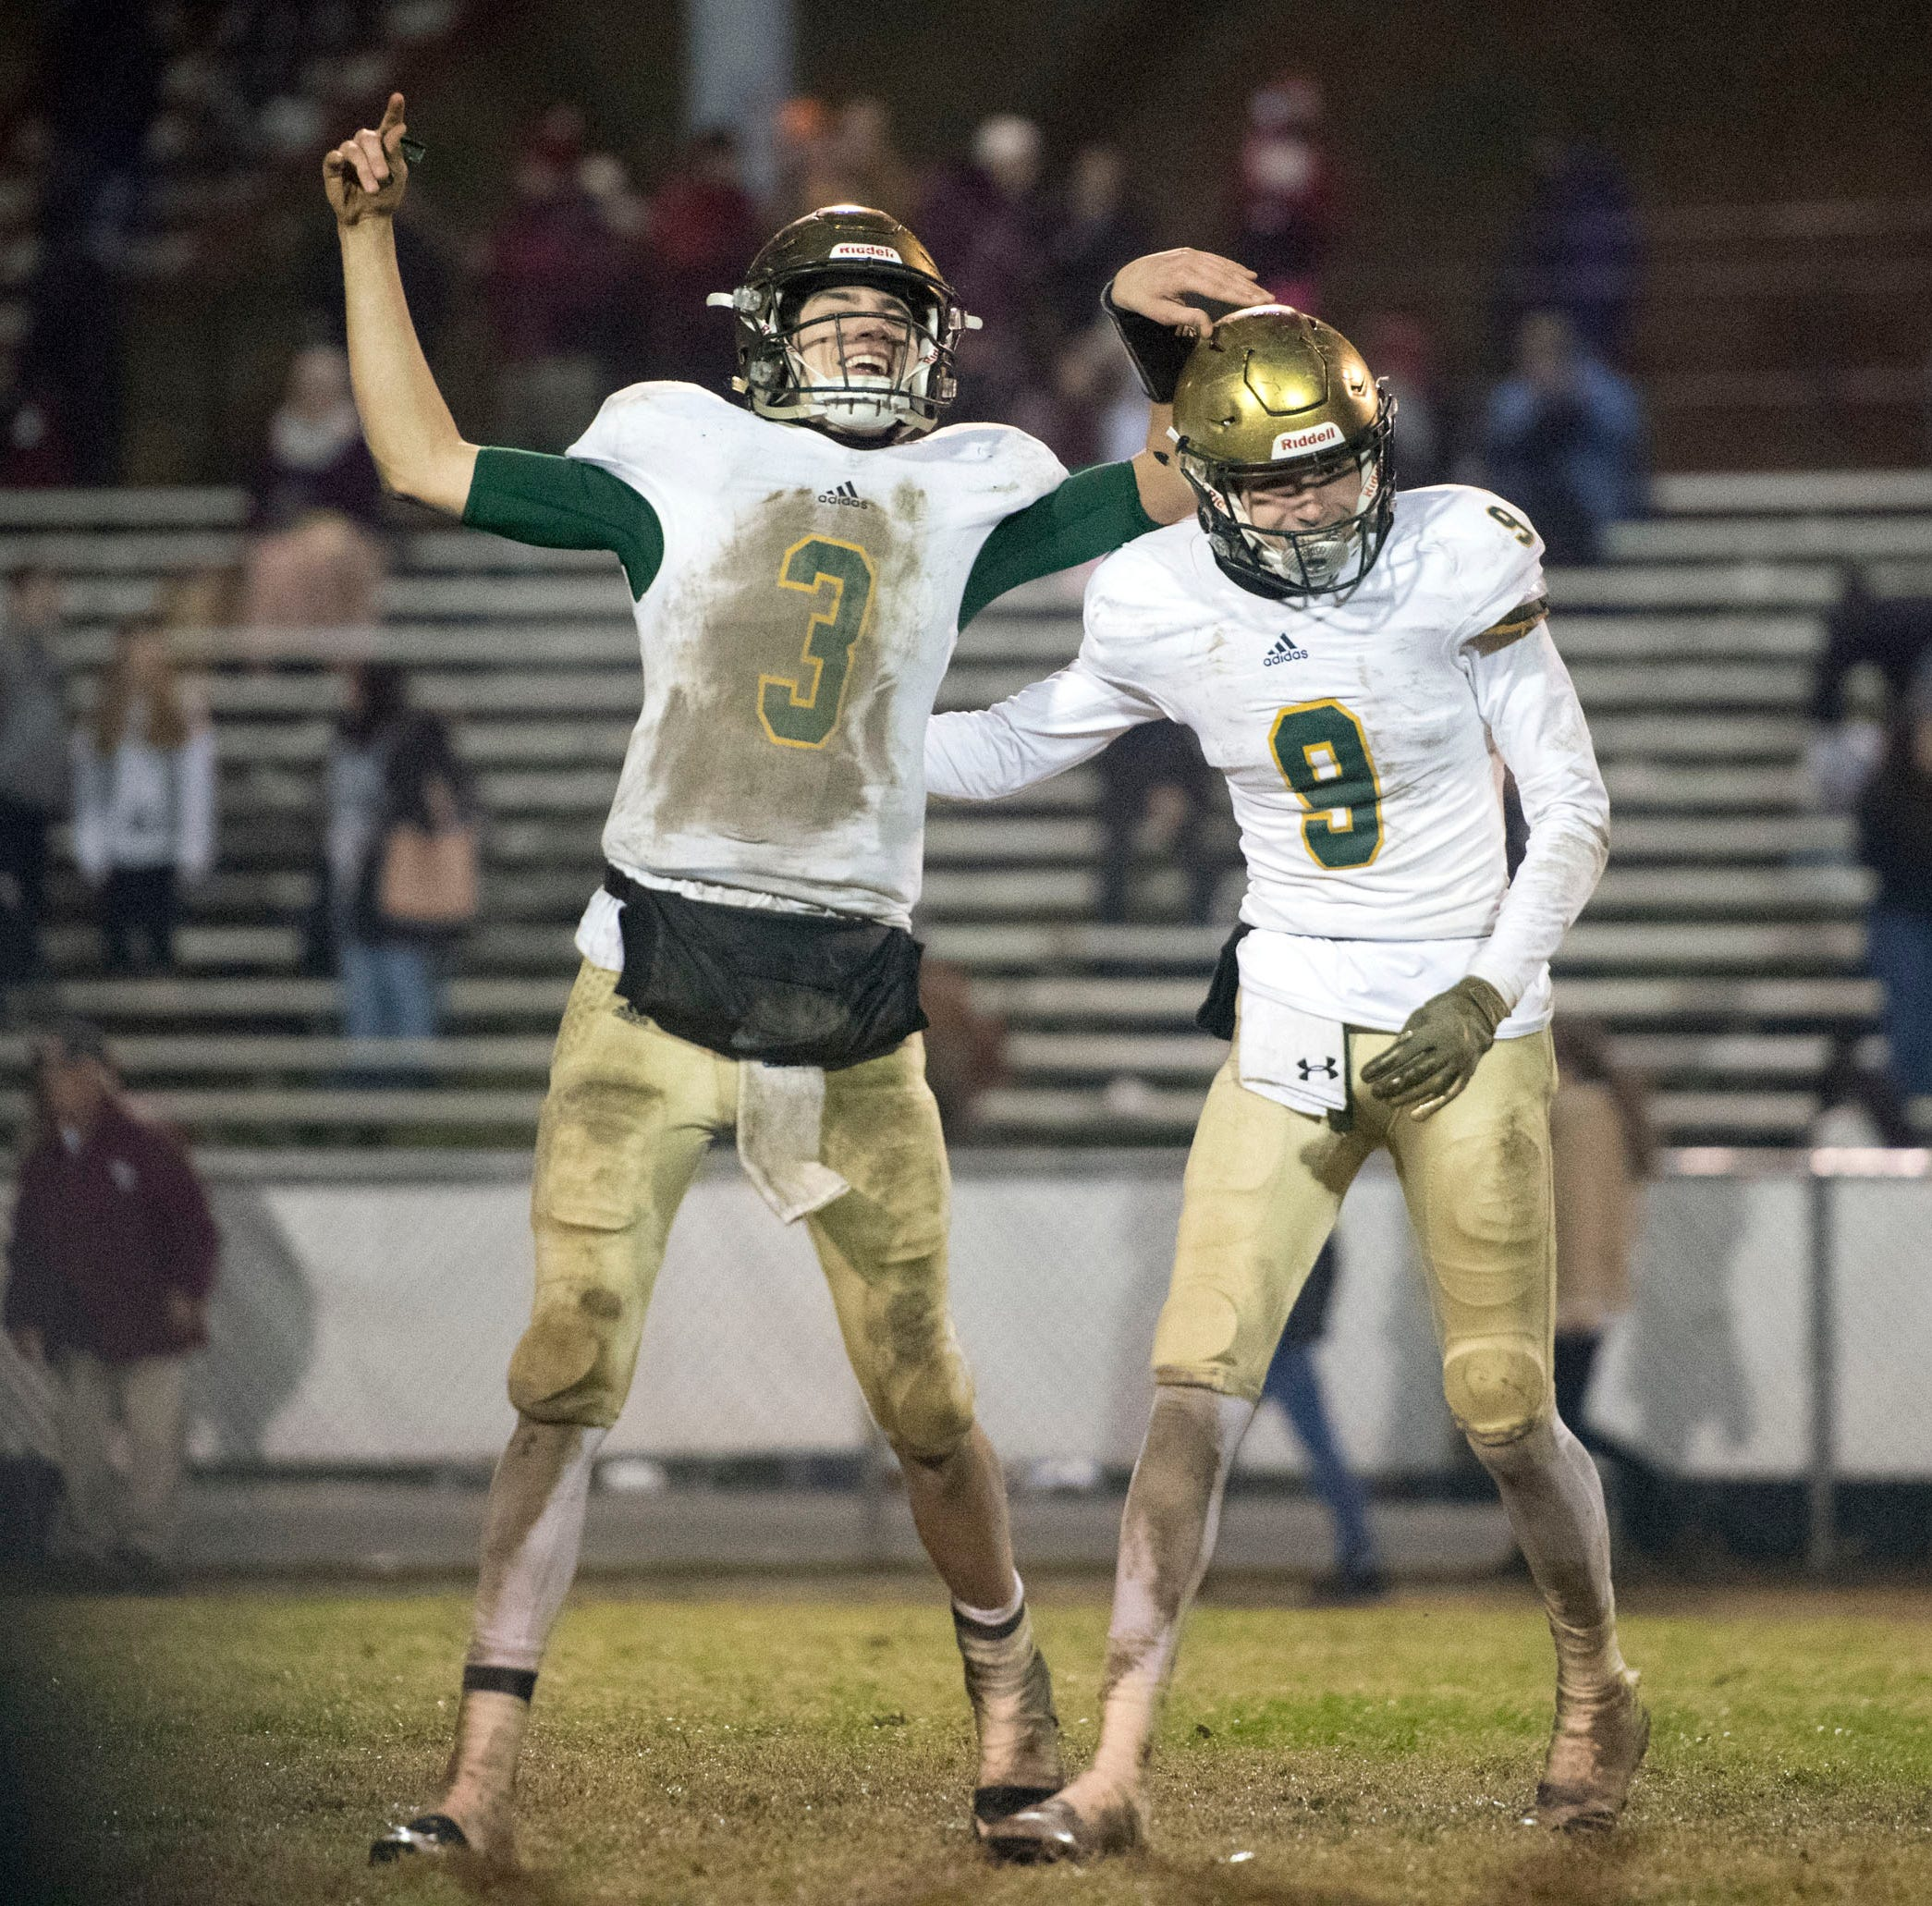 Butch Jones' son helps Catholic pull off huge comeback vs Oak Ridge in Class 5A quarterfinals